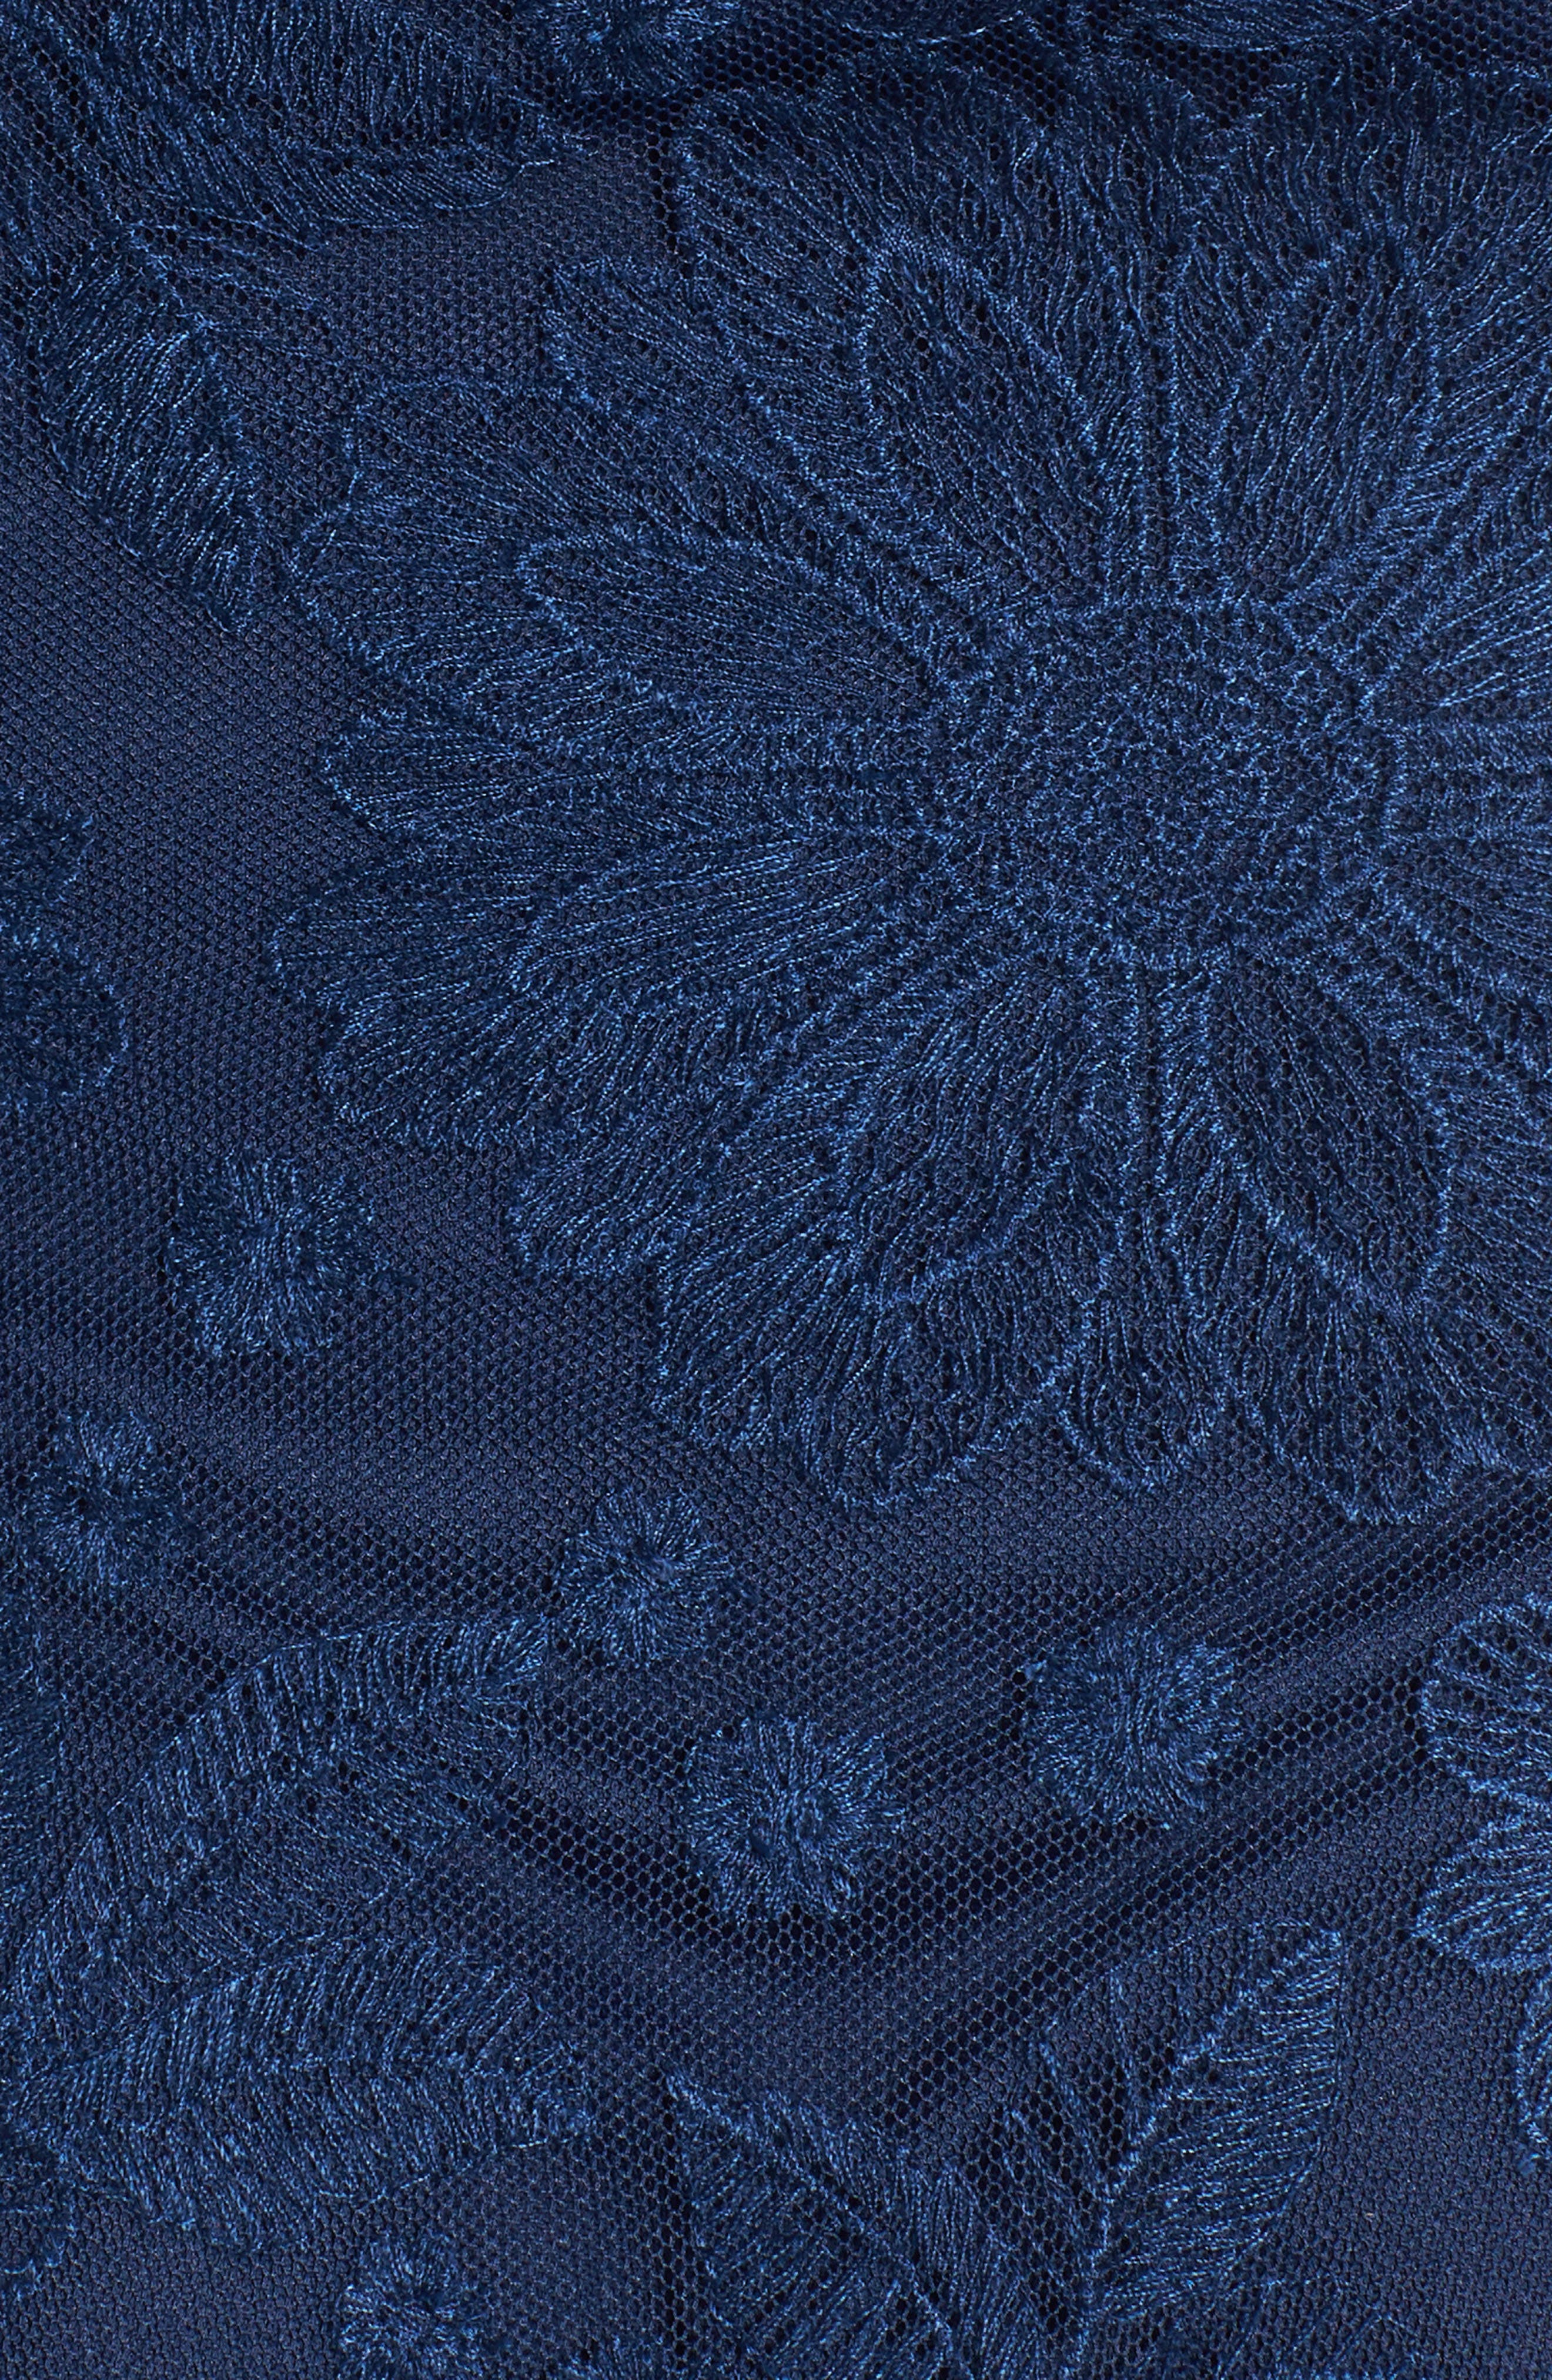 Abby Embroidered Bodysuit,                             Alternate thumbnail 4, color,                             Navy Lace